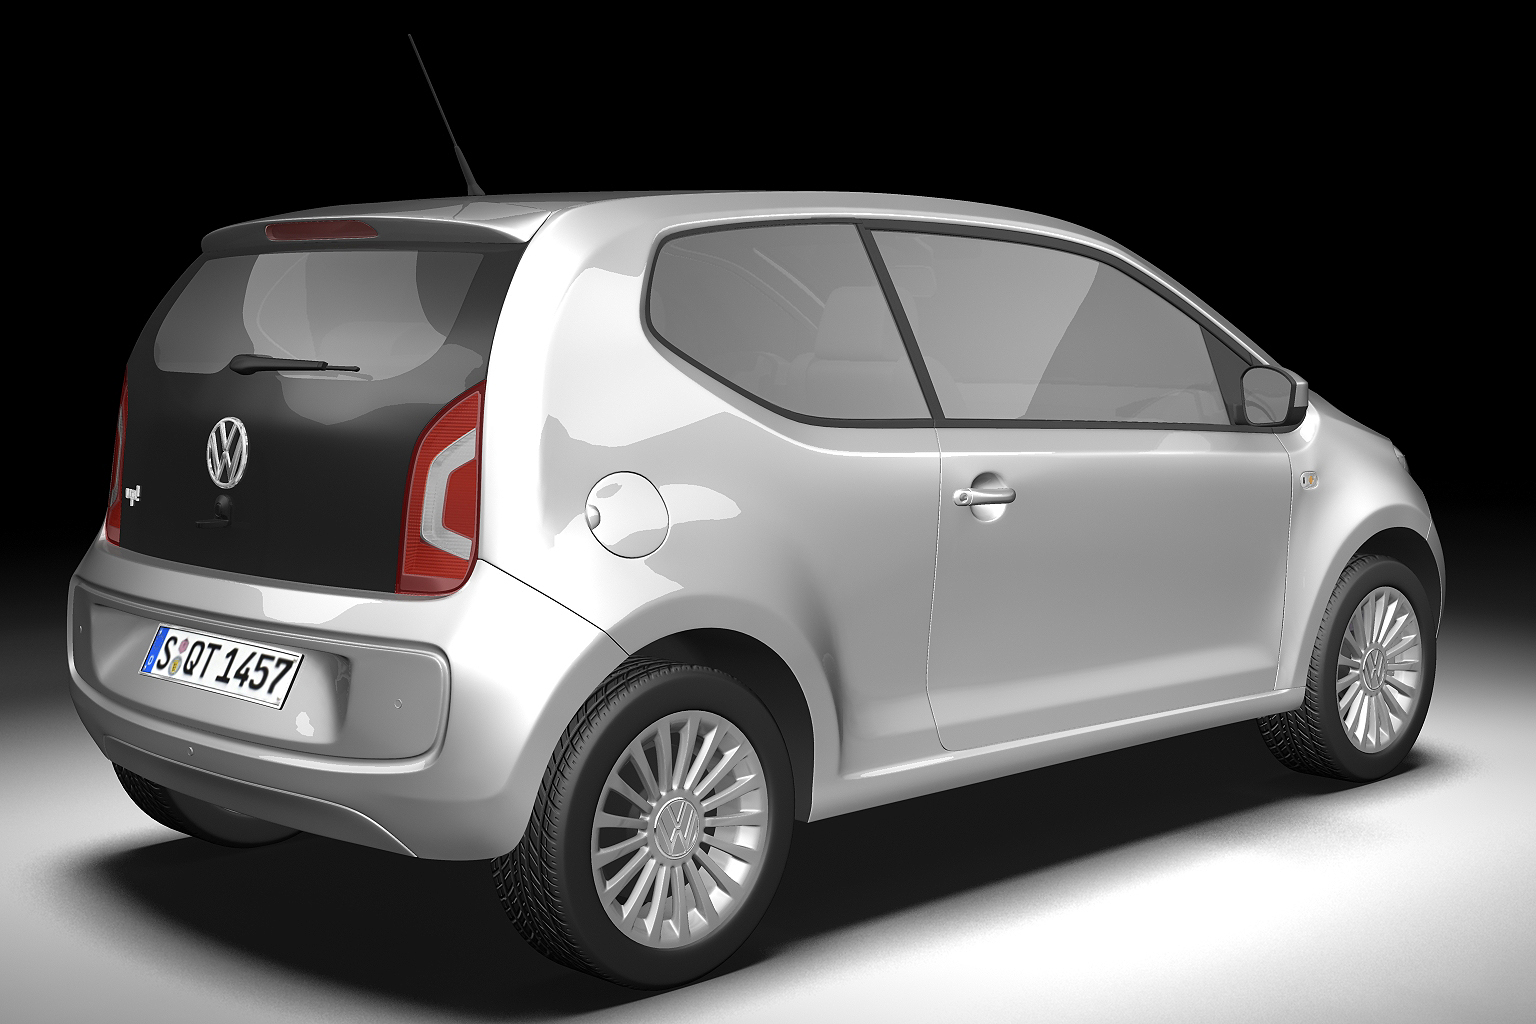 2013 volkswagen up 3d model 3ds max fbx c4d lwo hrc xsi obj 136208